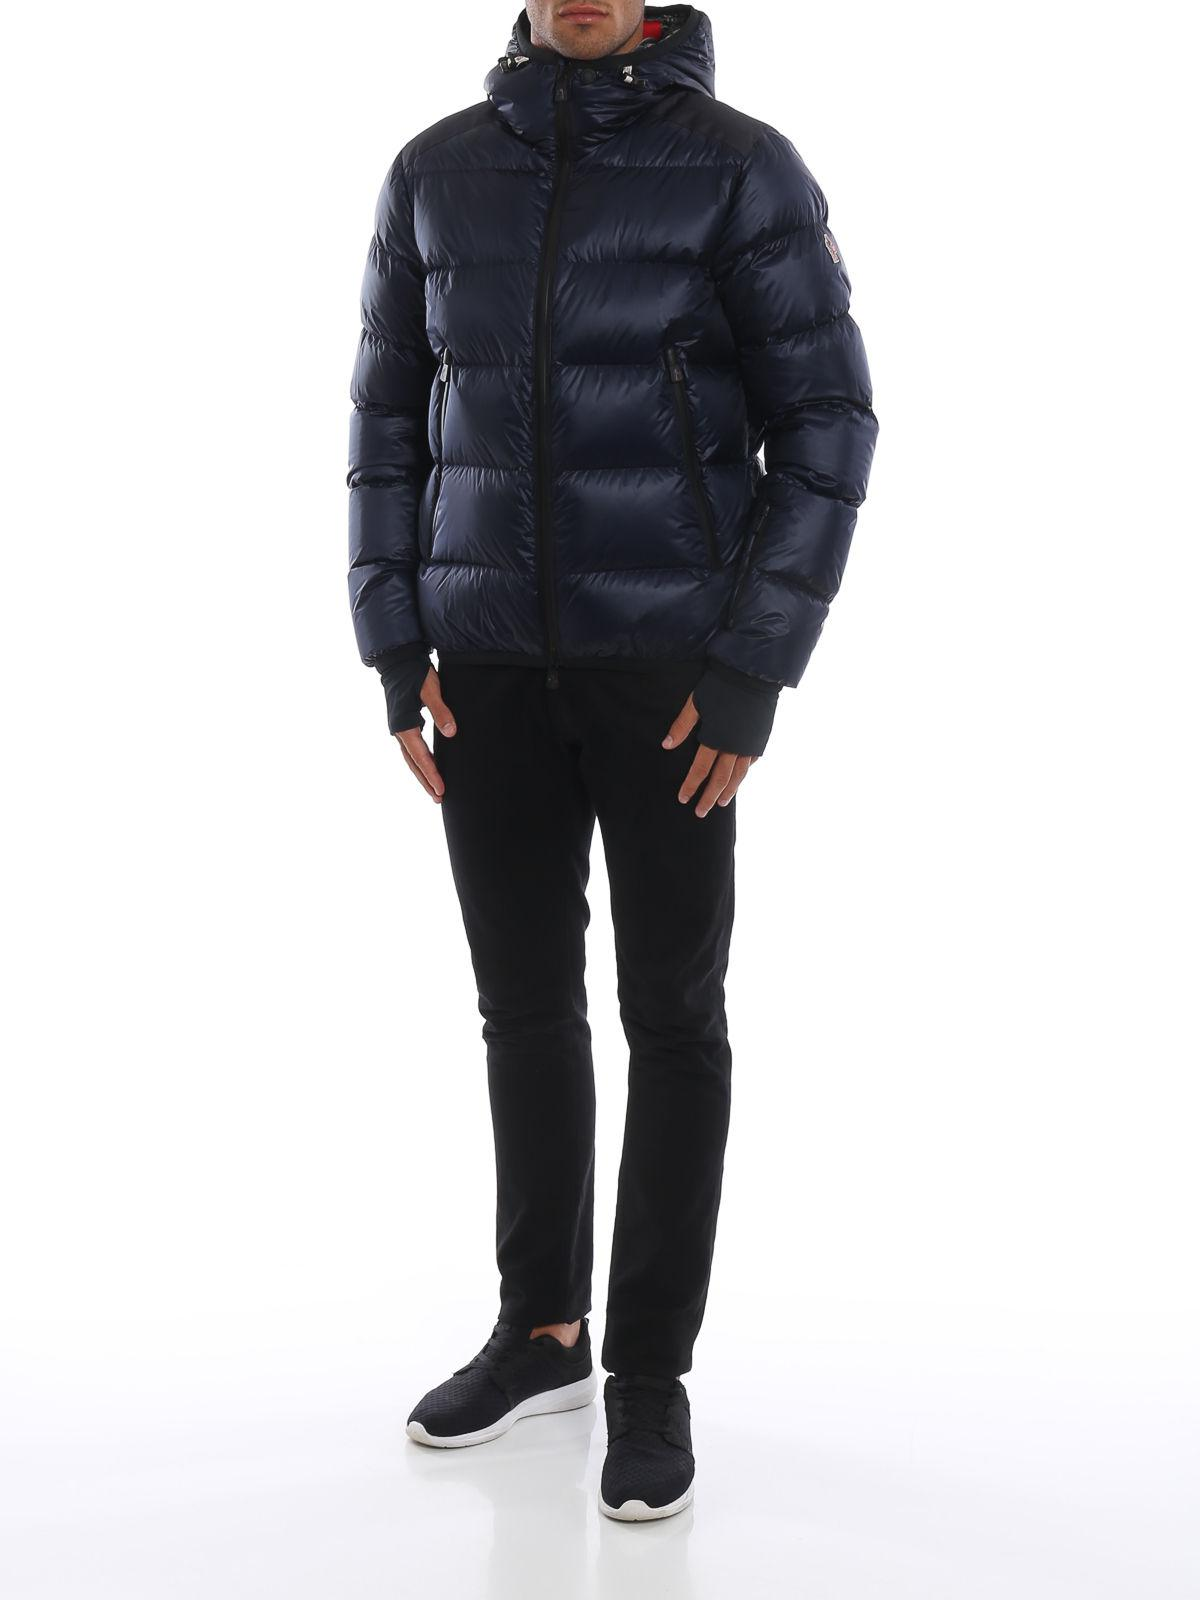 Lyst - Moncler Grenoble Hintertux Down Jacket in Blue for Men c35fb4aba